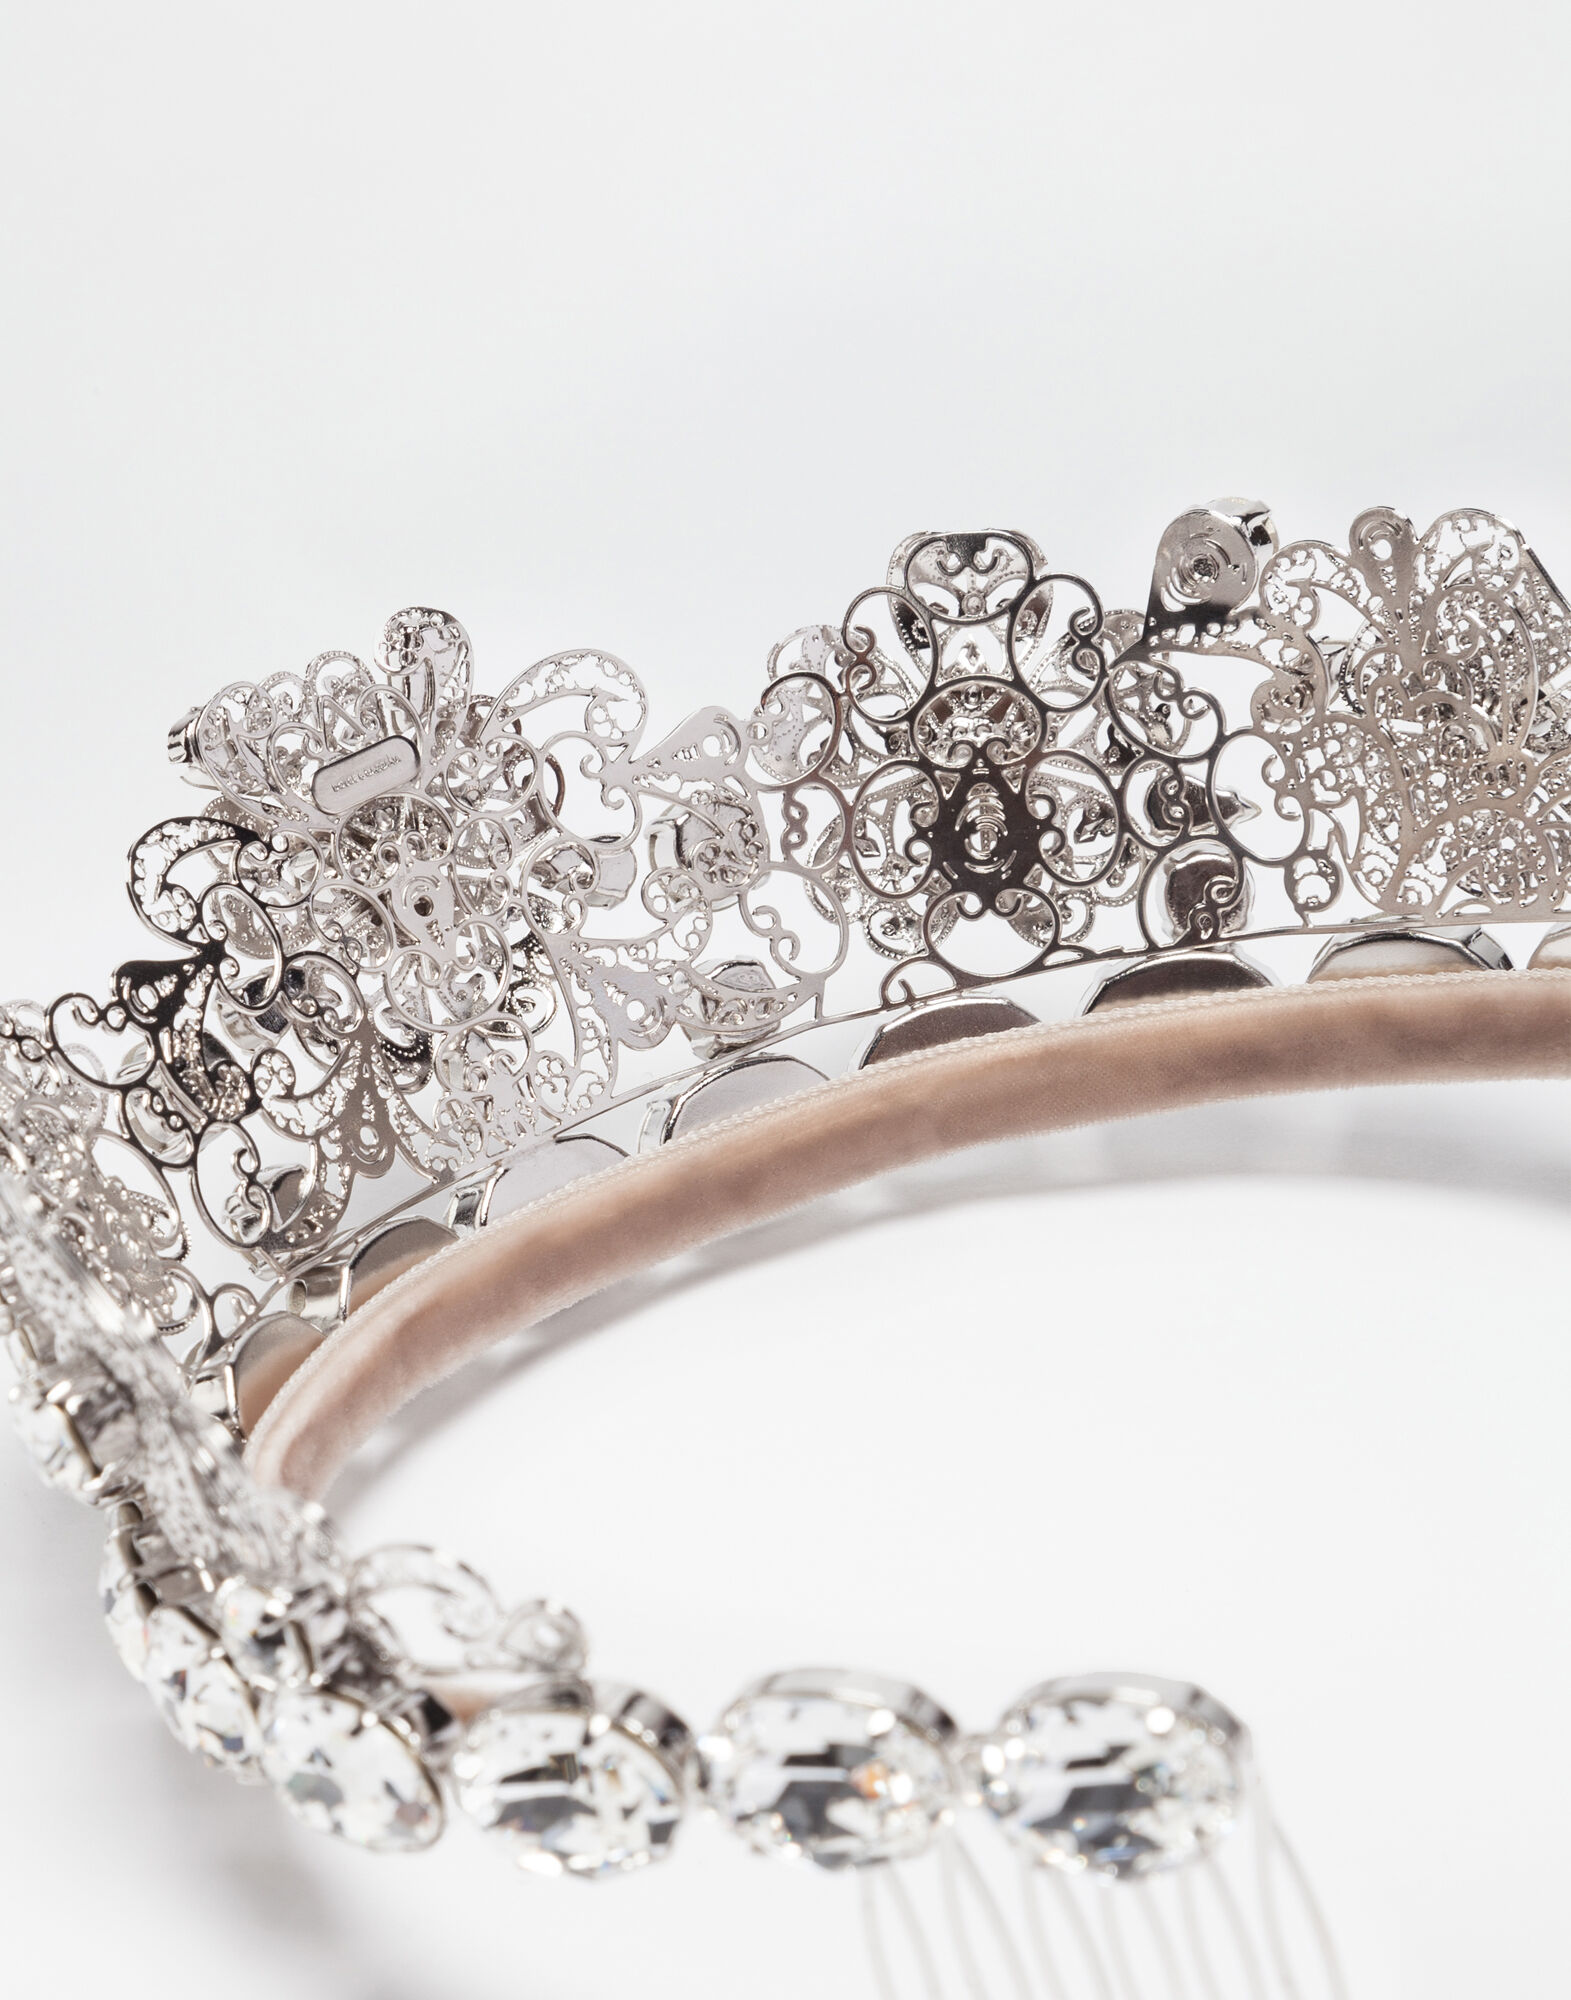 METAL CROWN WITH CRYSTALS